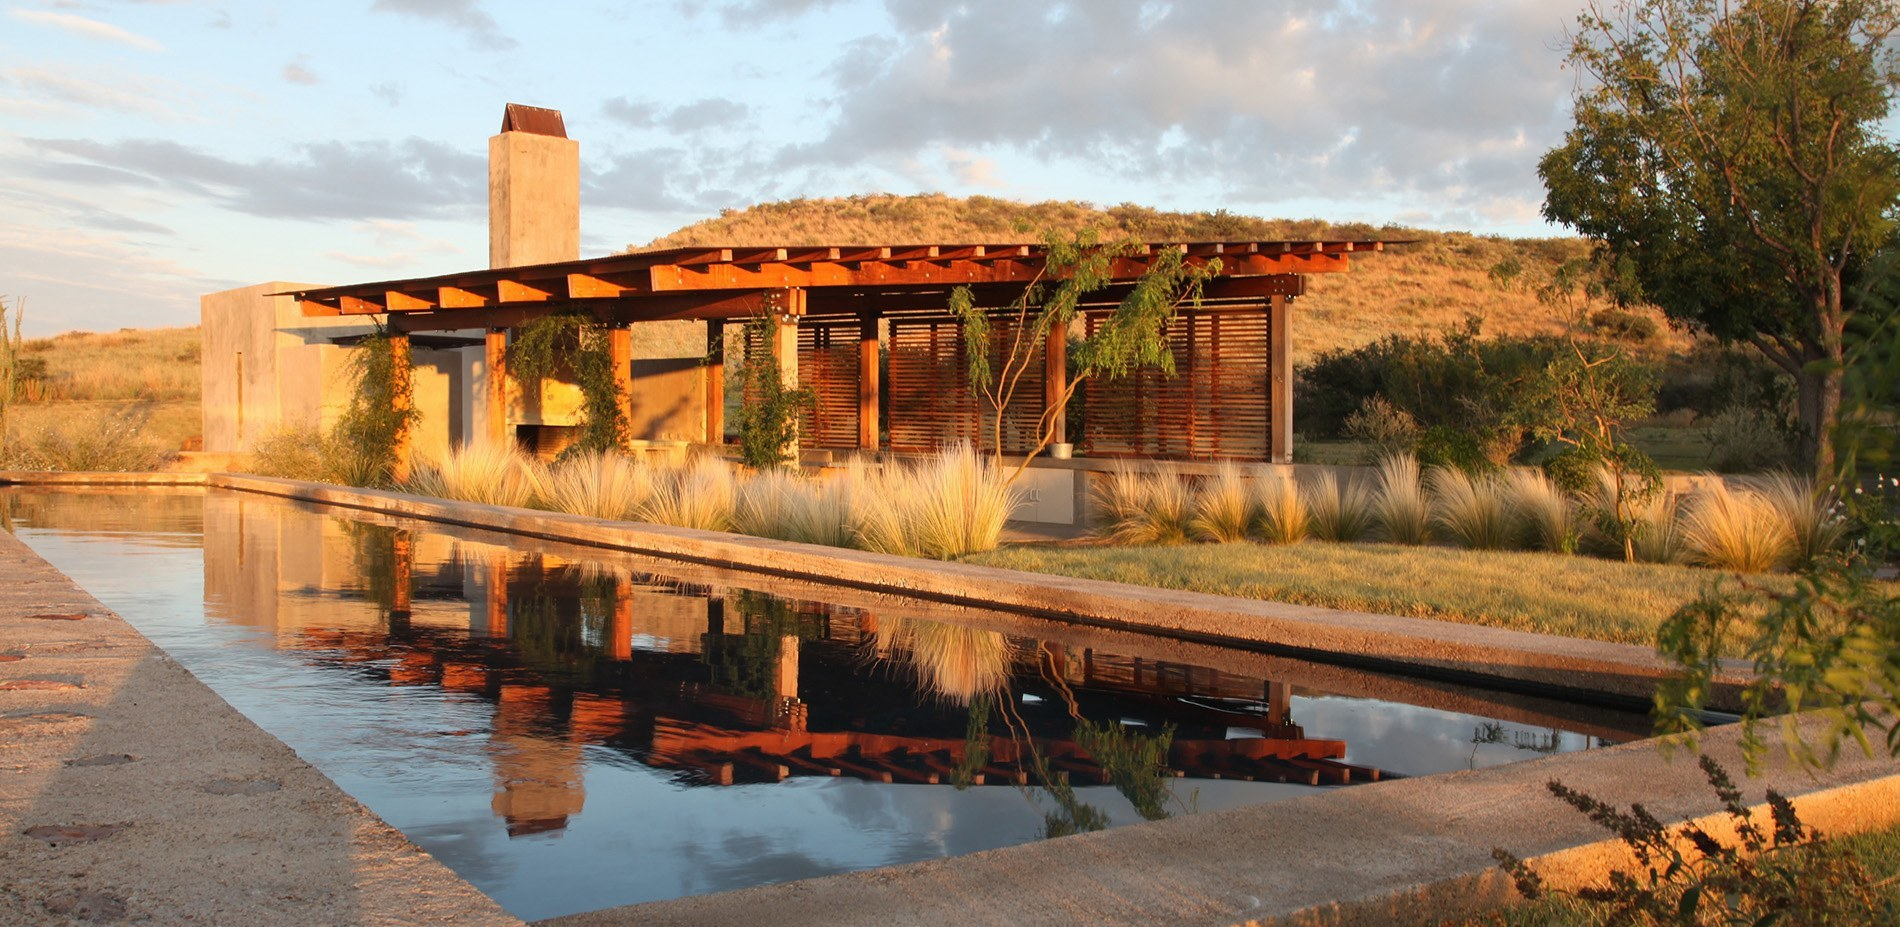 West texas ranch 2014 asla professional awards for Ten eyck landscape architects